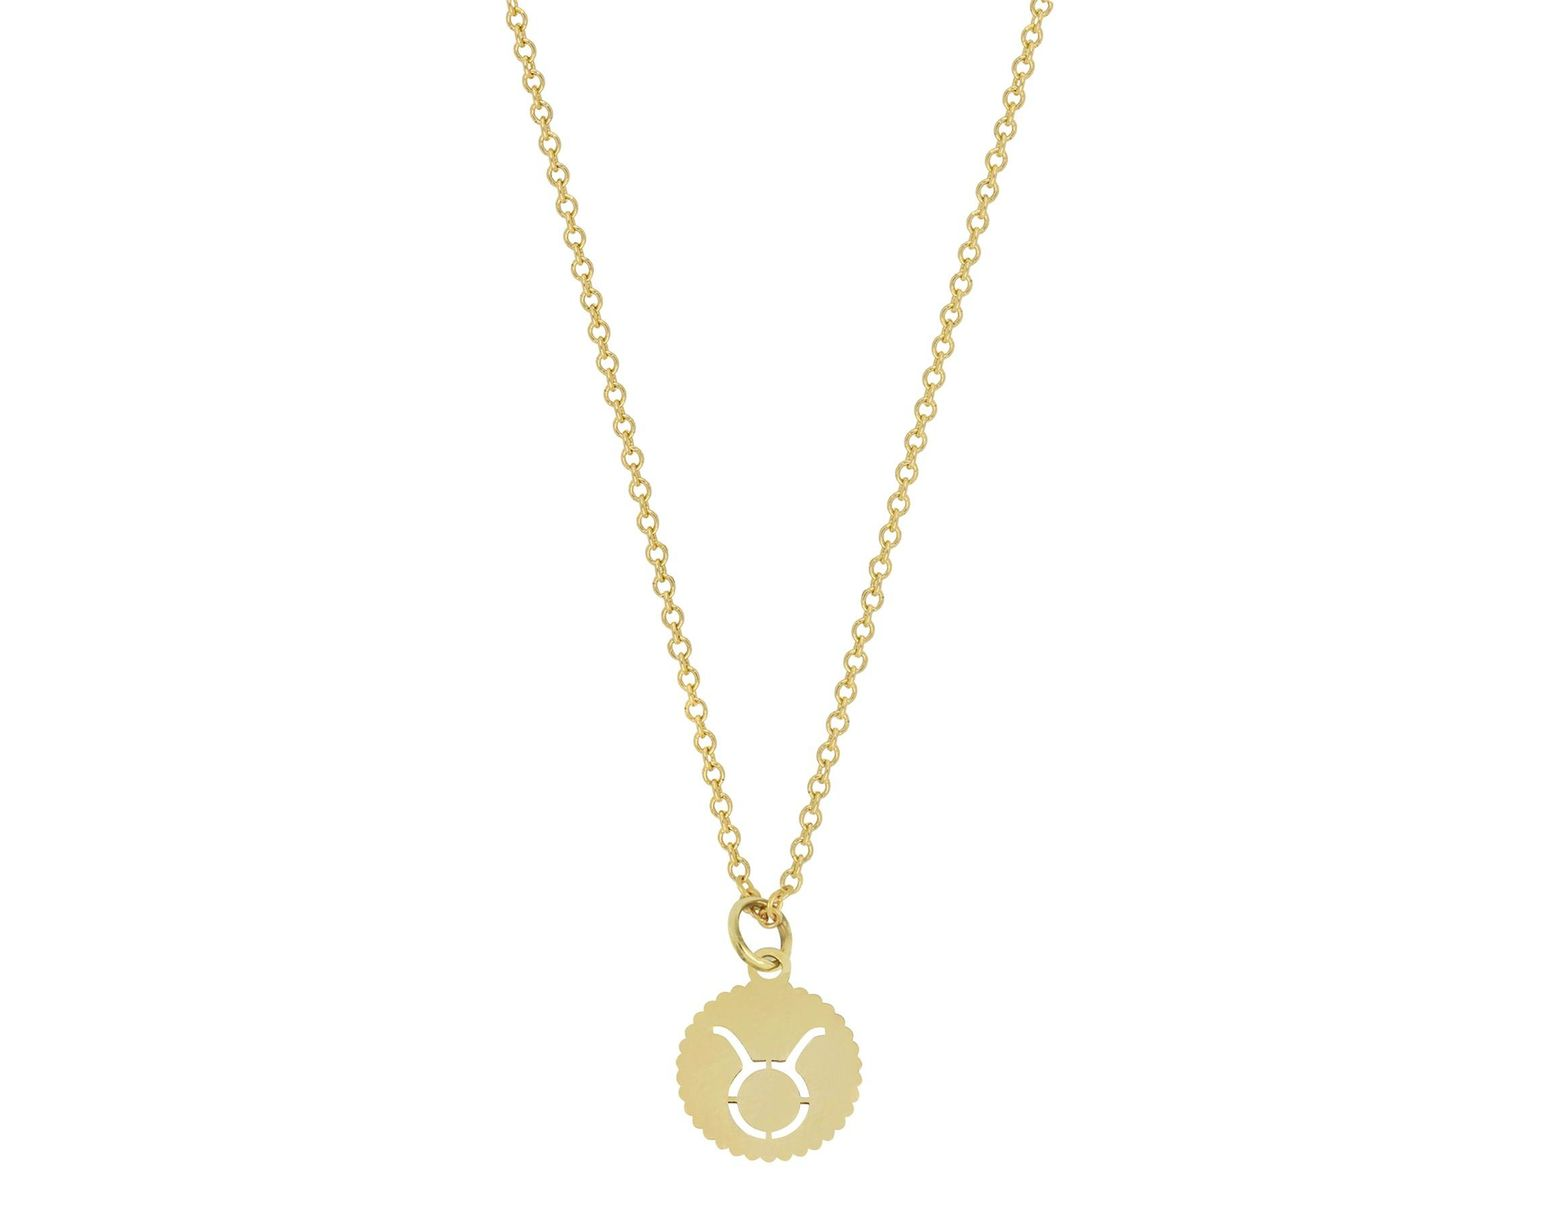 f99879182 Lyst - Bony Levy 14k Yellow Gold Petite Taurus Pendant Necklace in Metallic